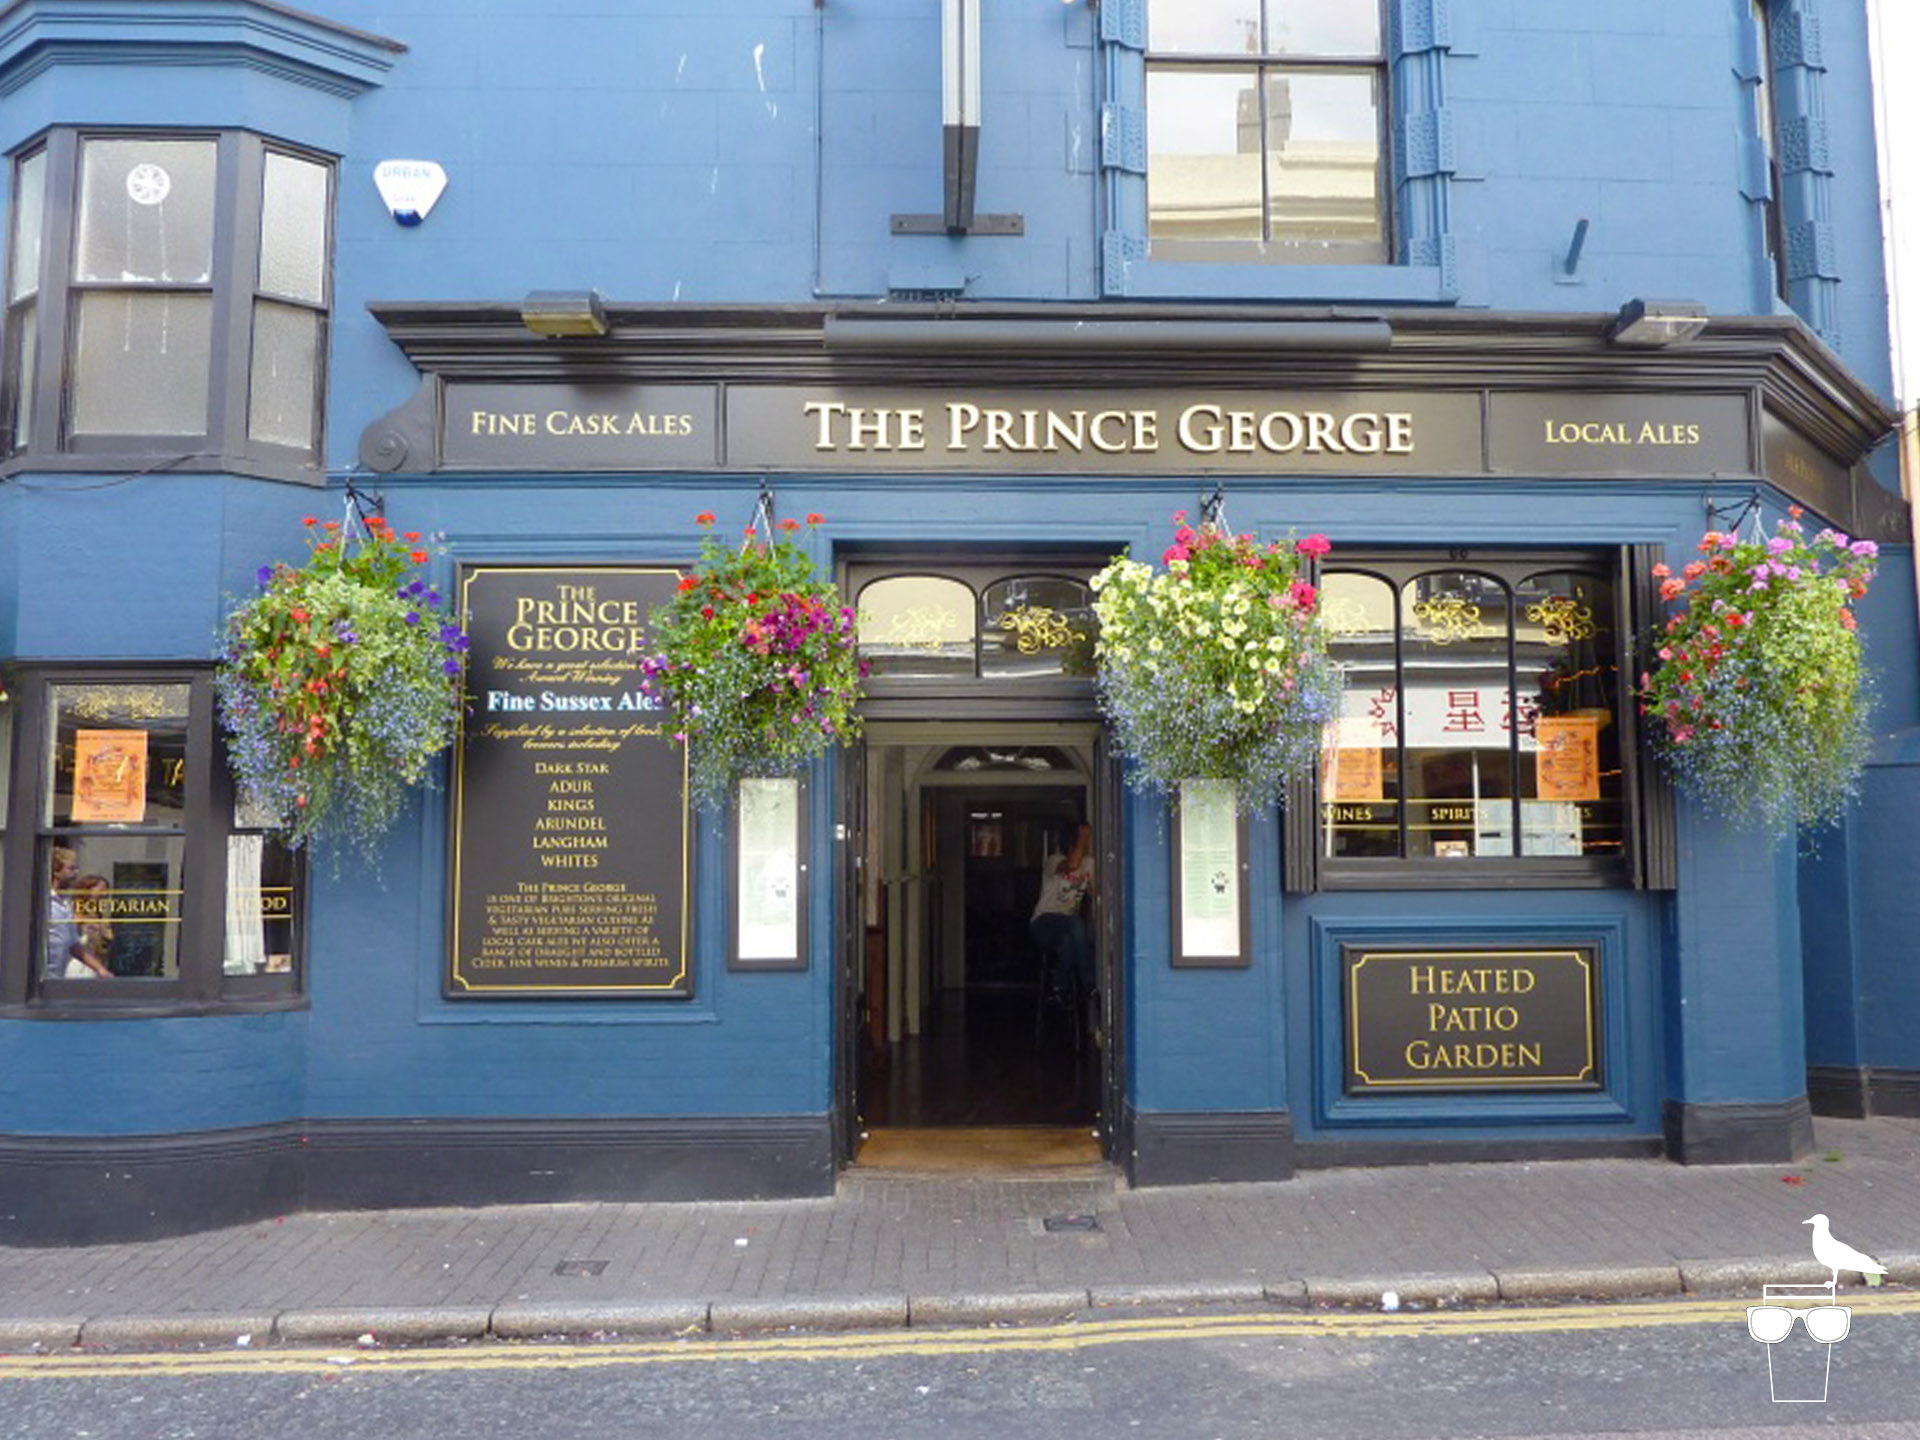 prince george brighton pub outside front